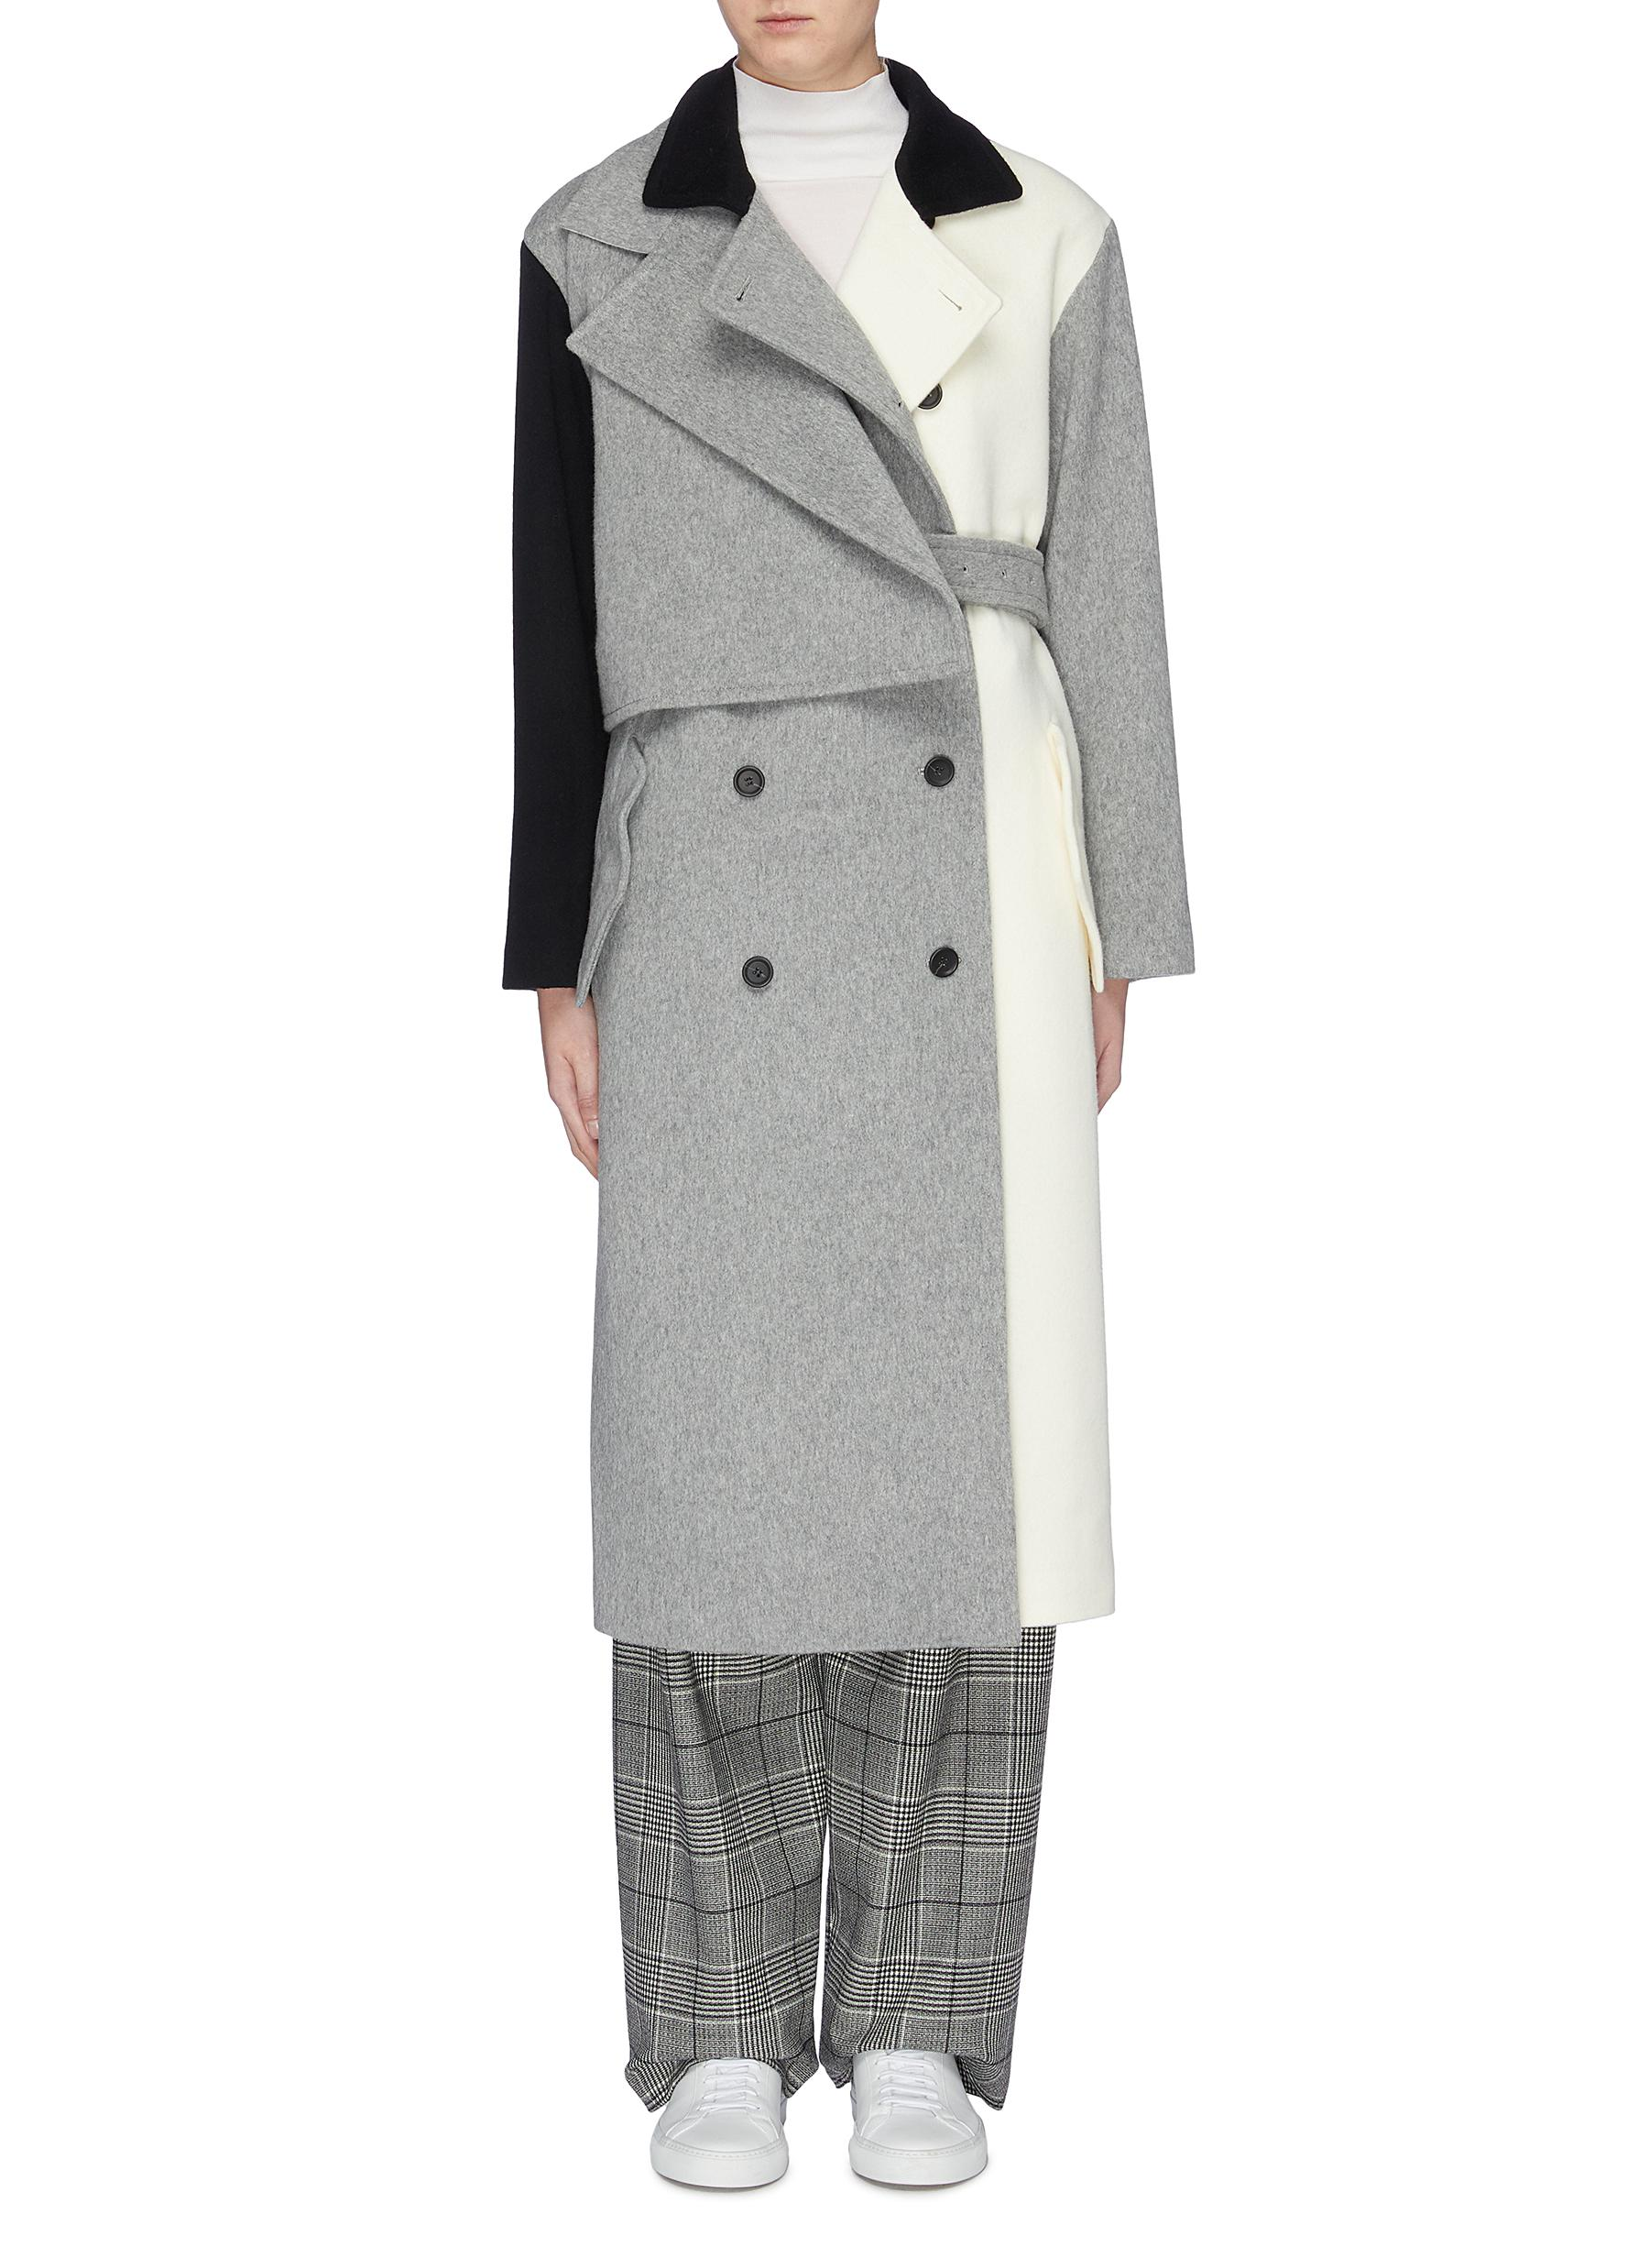 Belted layered colourblock melton trench coat by The Keiji